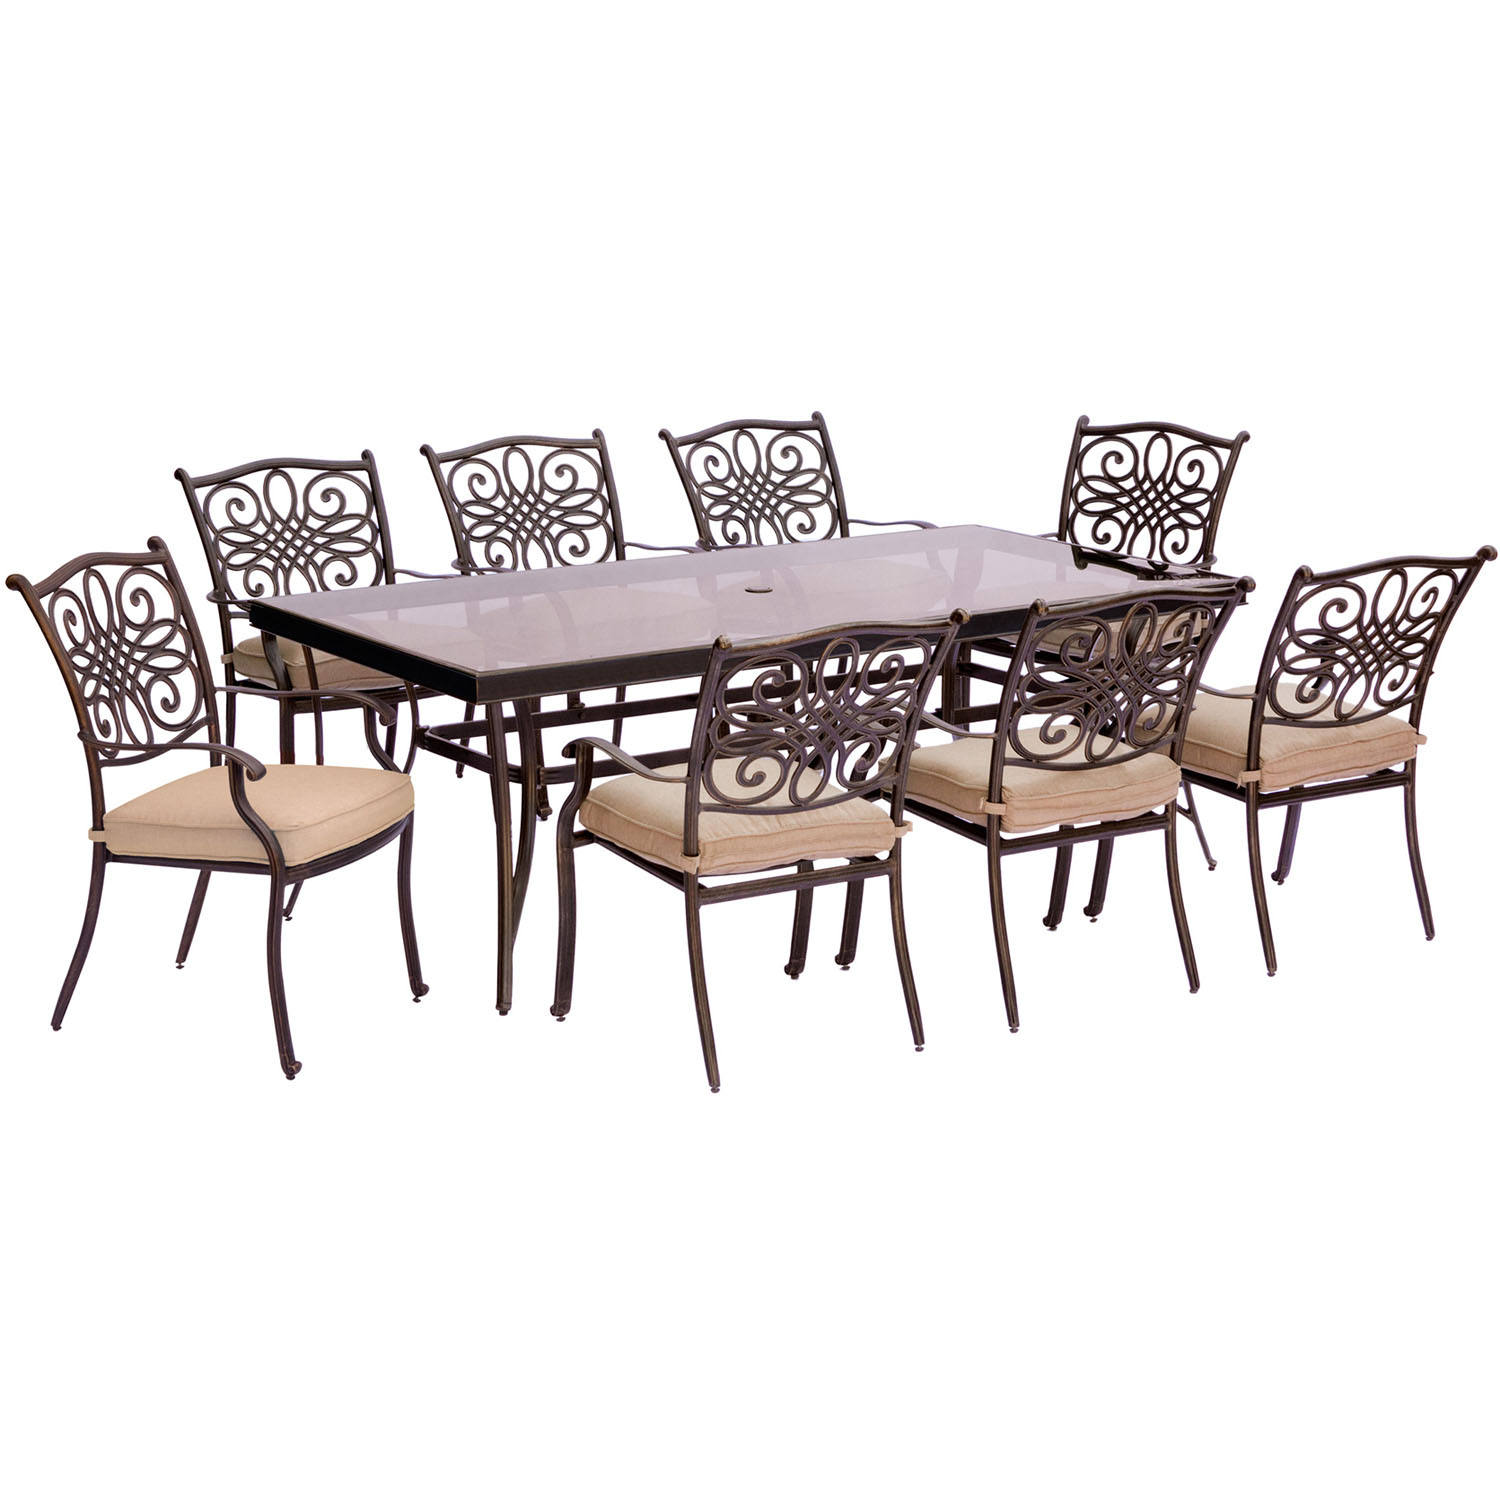 Traditions 9PC Dining Set in Tan with Extra Long Glass Top Dining